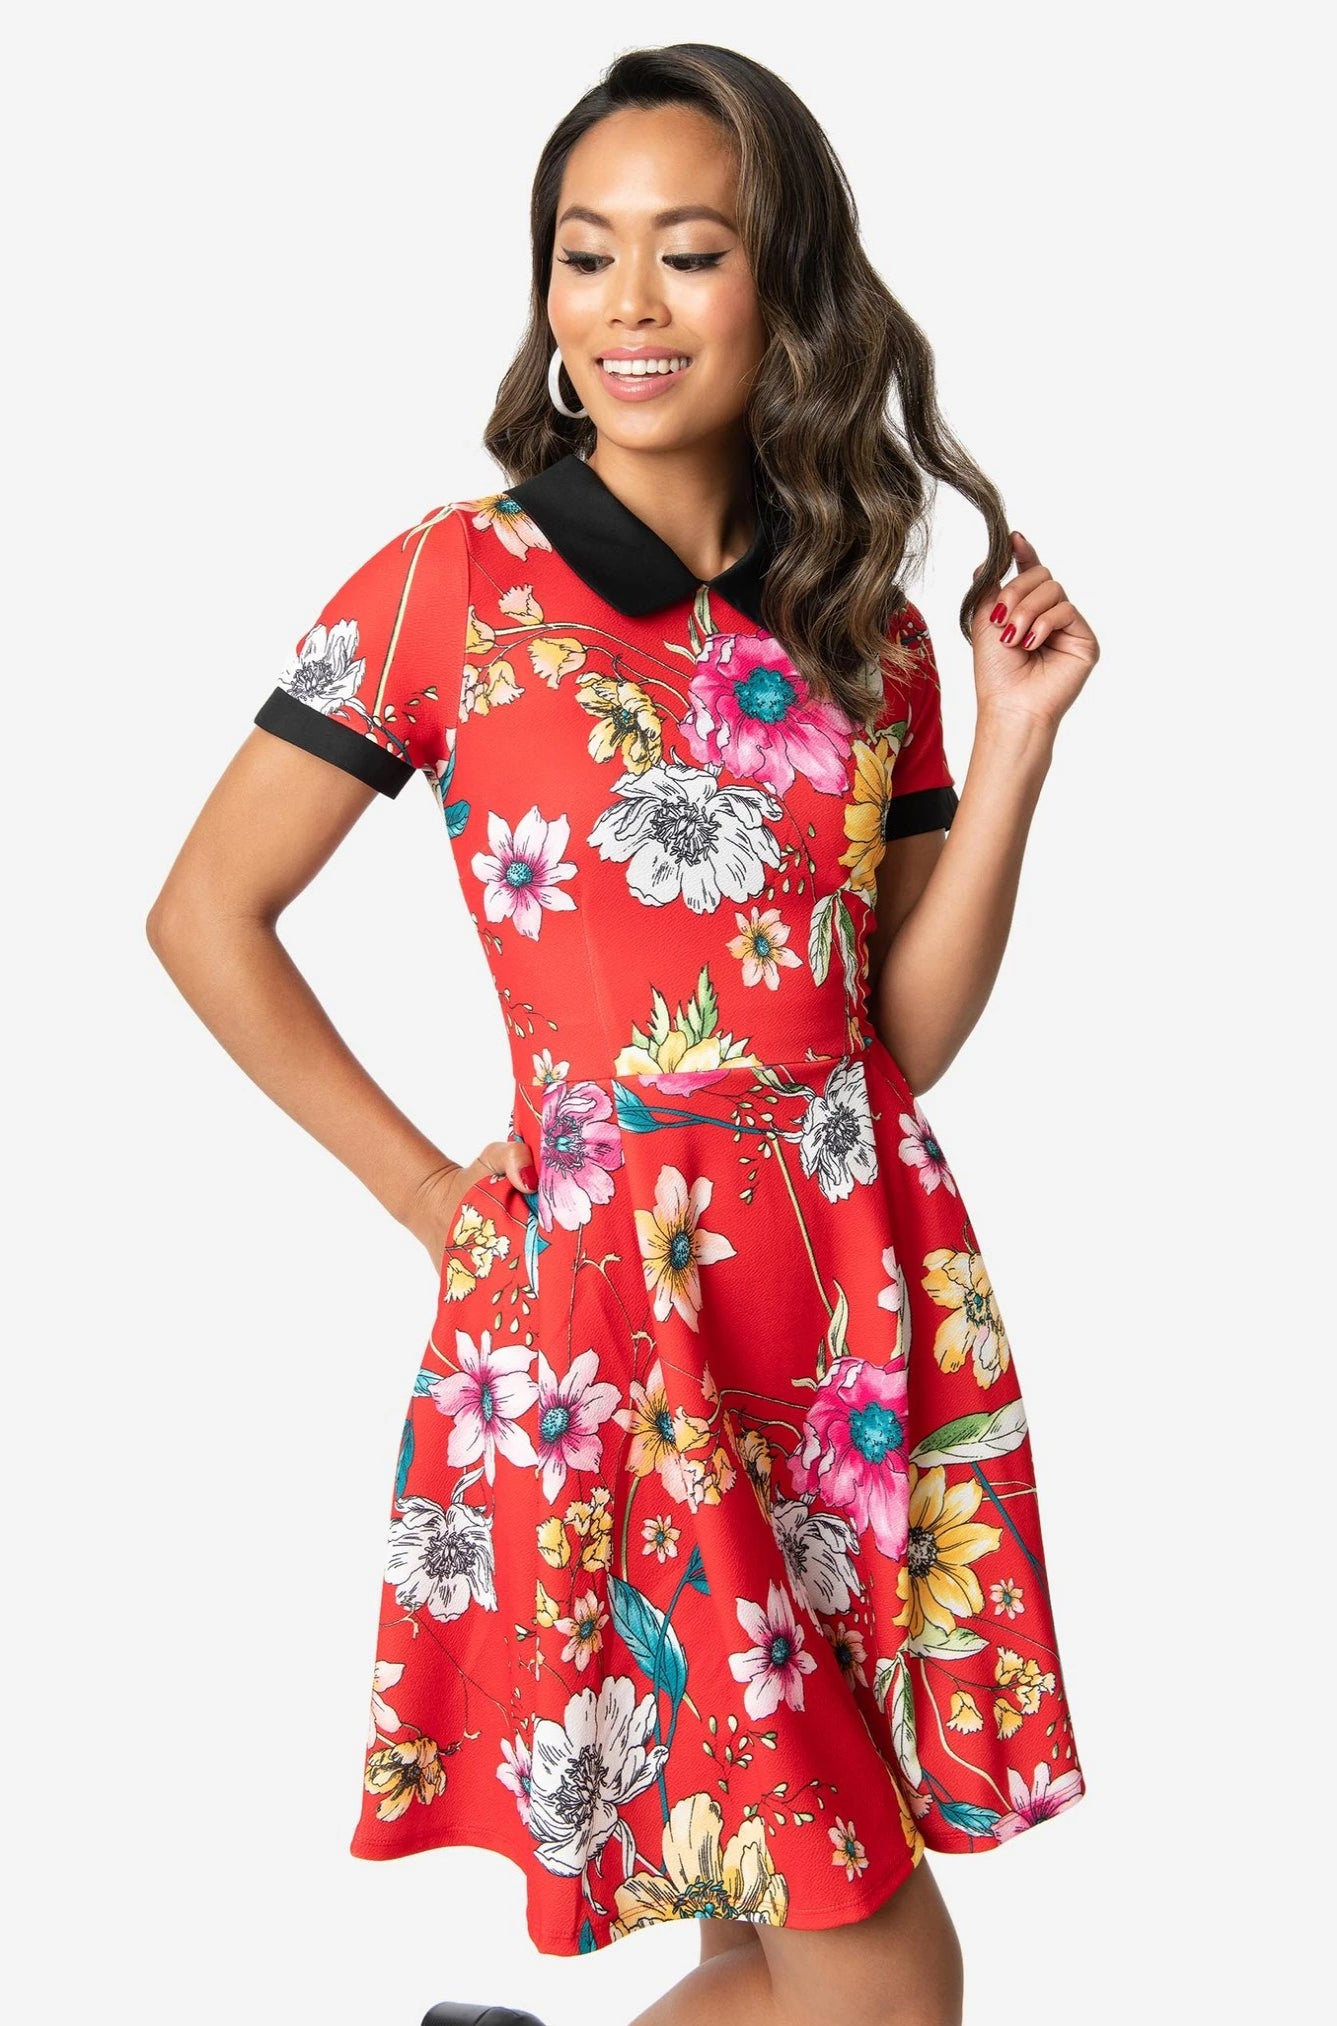 Red Floral Short Sleeve Dress by Smak Parlour